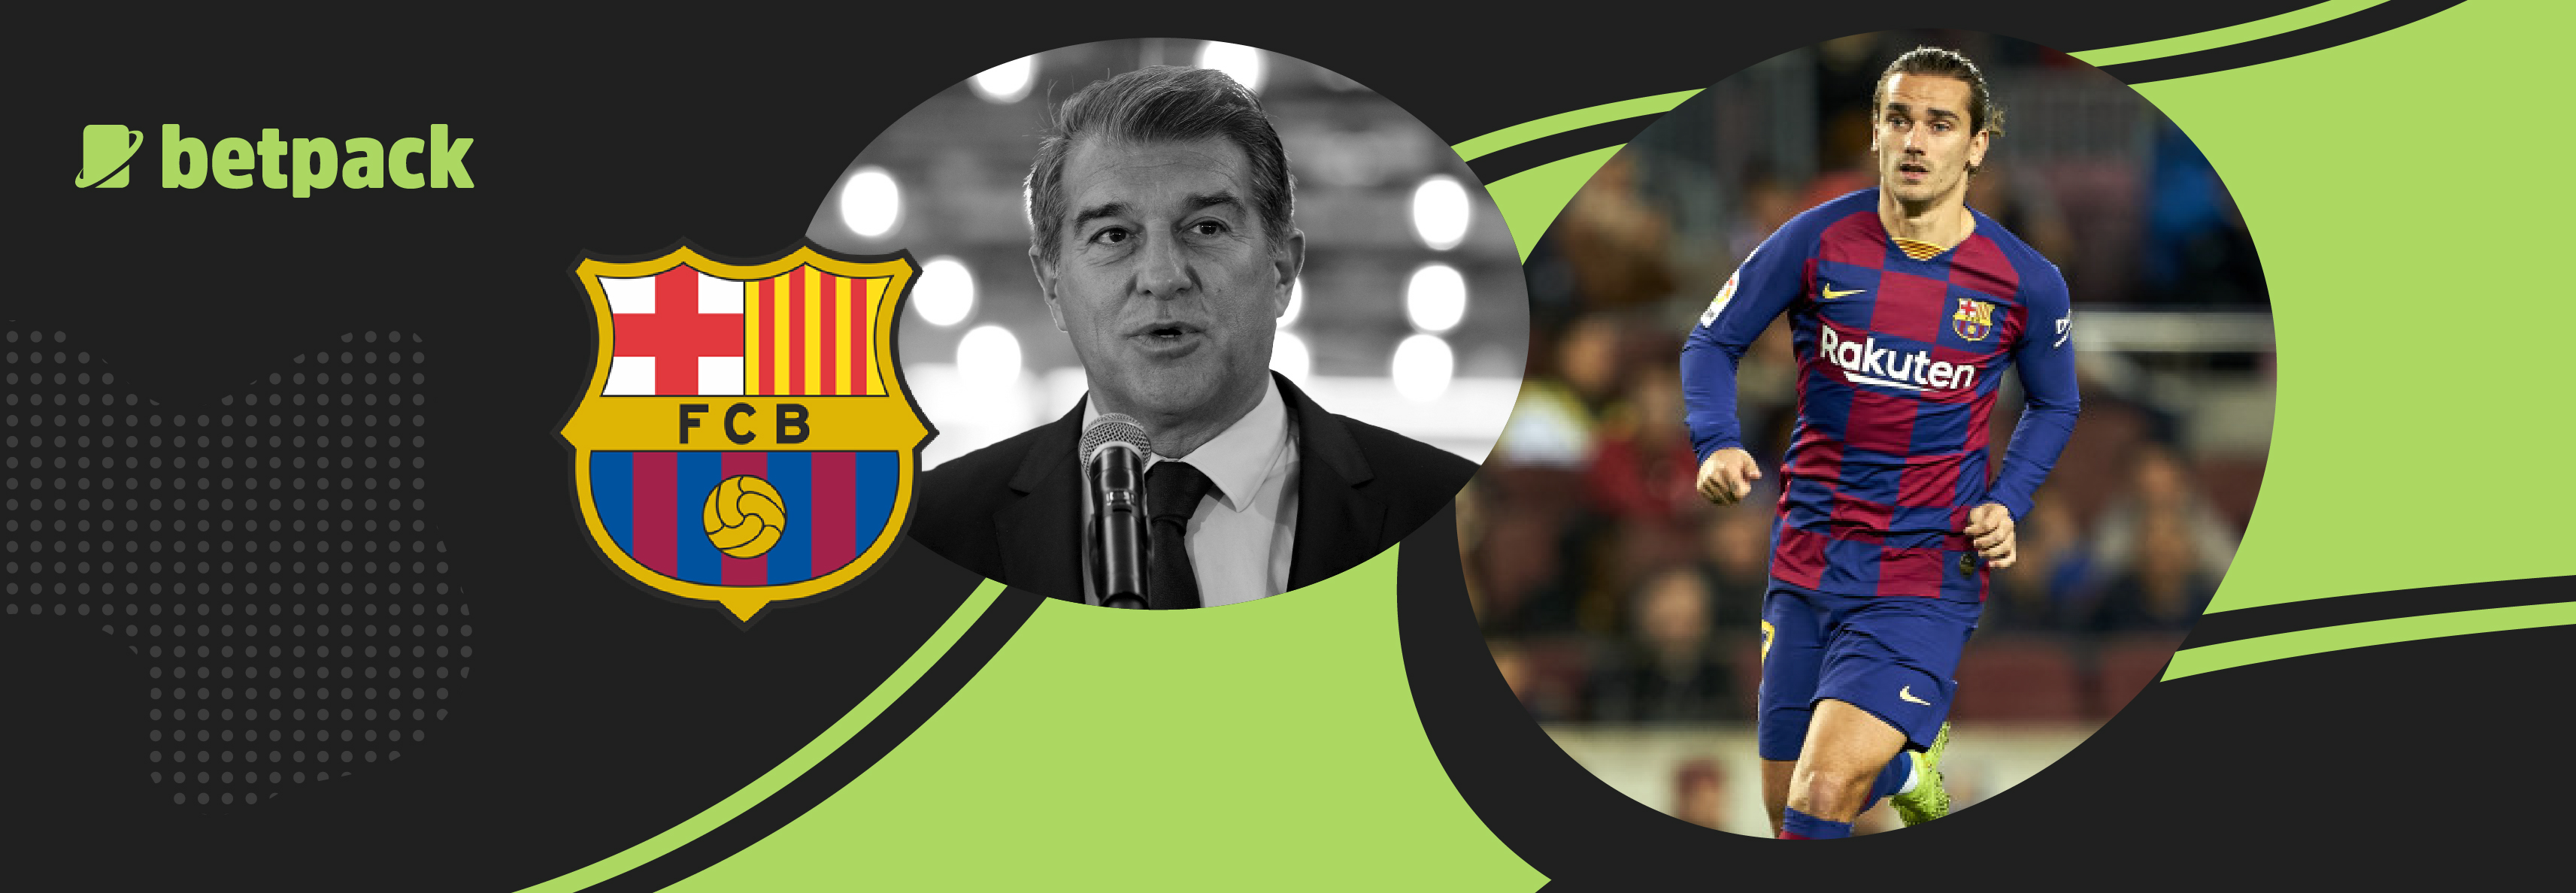 Laporta says the club is open to offers for Griezmann